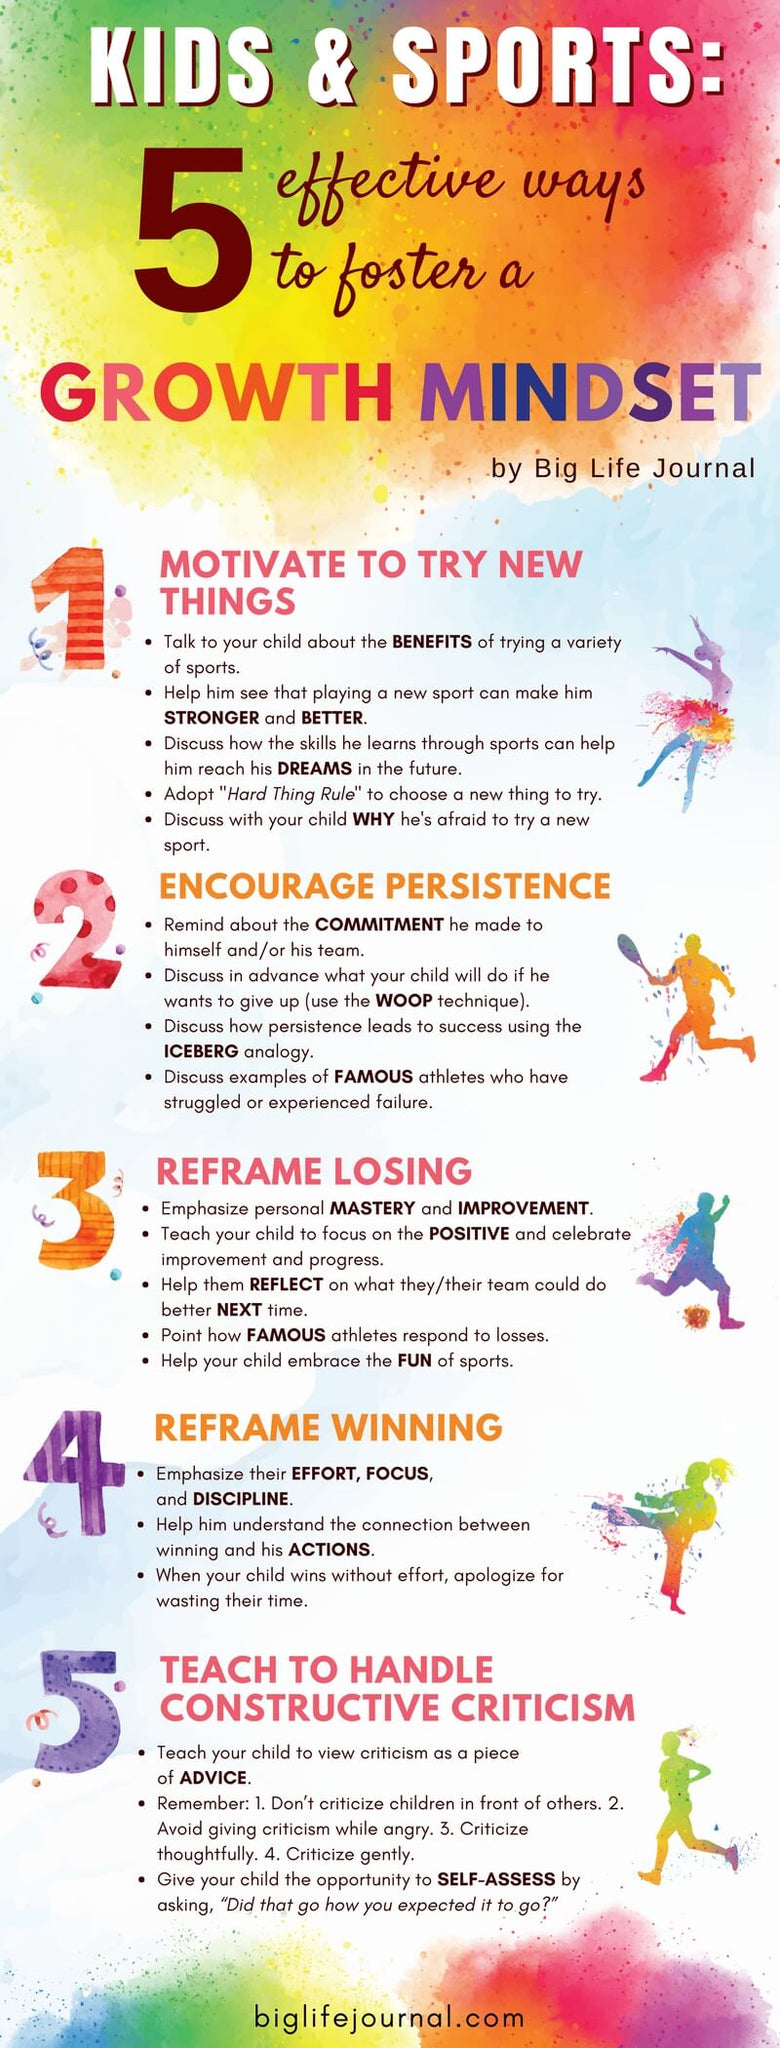 Kids And Sports 5 Effective Ways To Foster A Growth Mindset Big